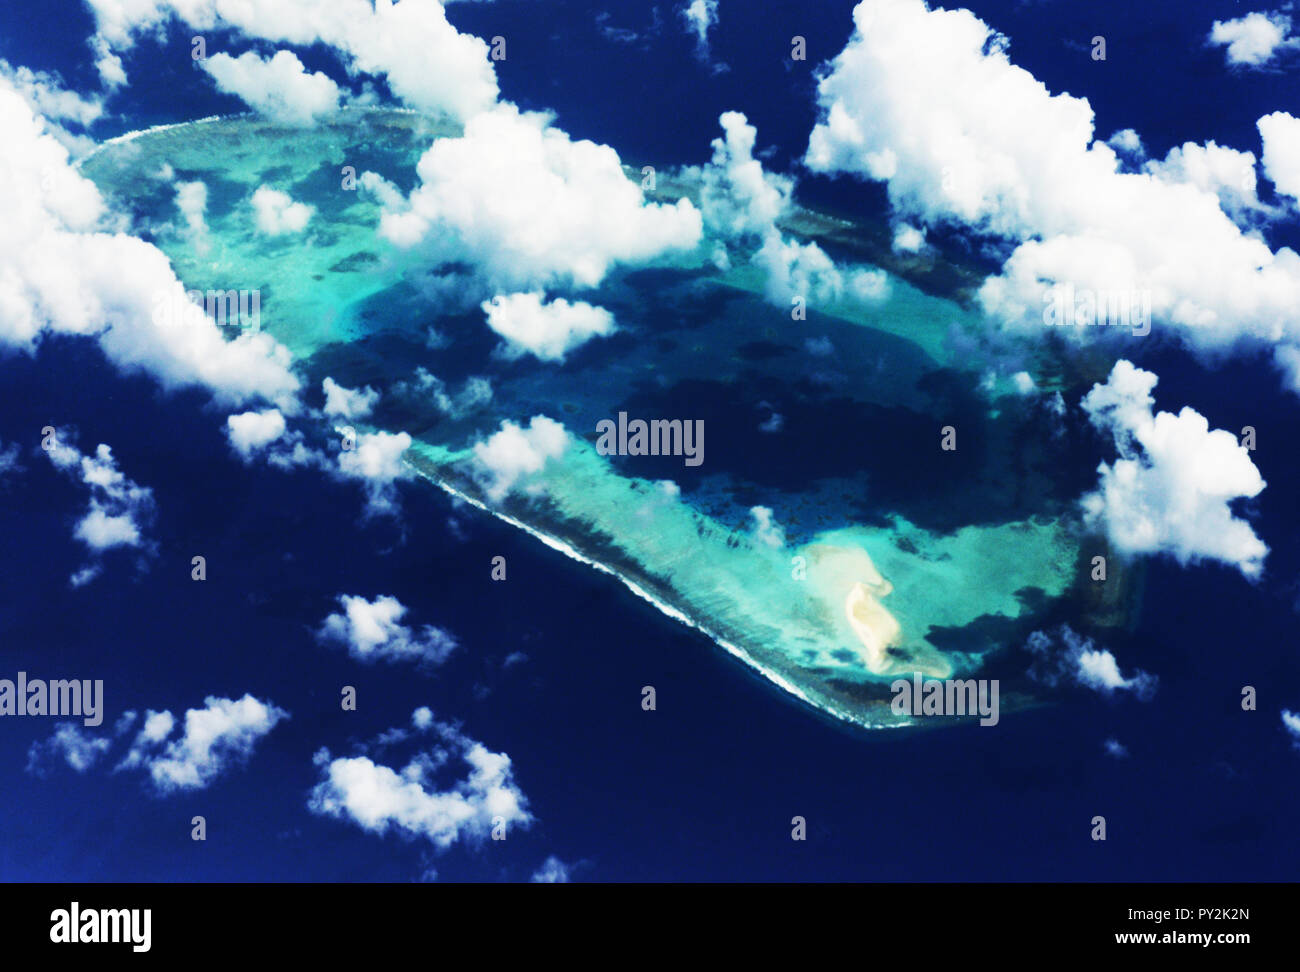 Aerial view of the Paracel islands in the South China Sea. - Stock Image